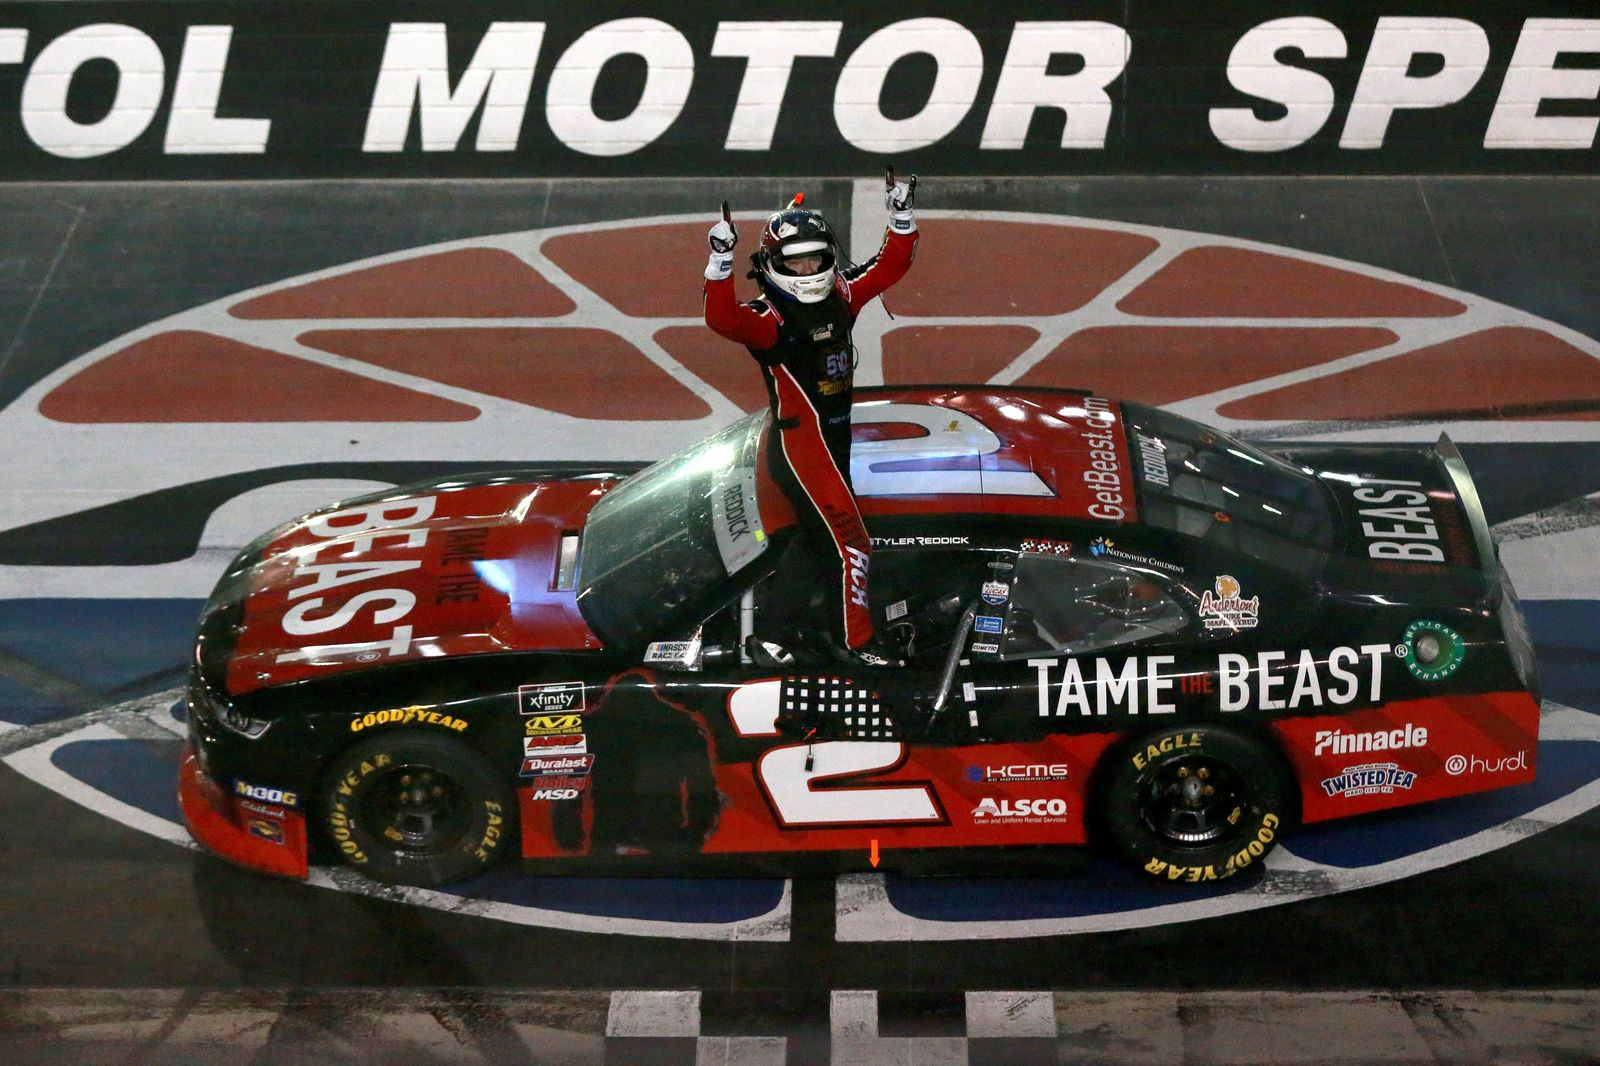 BRISTOL, TENNESSEE - AUGUST 16: Tyler Reddick, driver of the #2 Tame the BEAST Chevrolet, celebrates after winning the NASCAR Xfinity Series Food City 300 at Bristol Motor Speedway on August 16, 2019 in Bristol, Tennessee. (Photo by Sean Gardner/Getty Images)